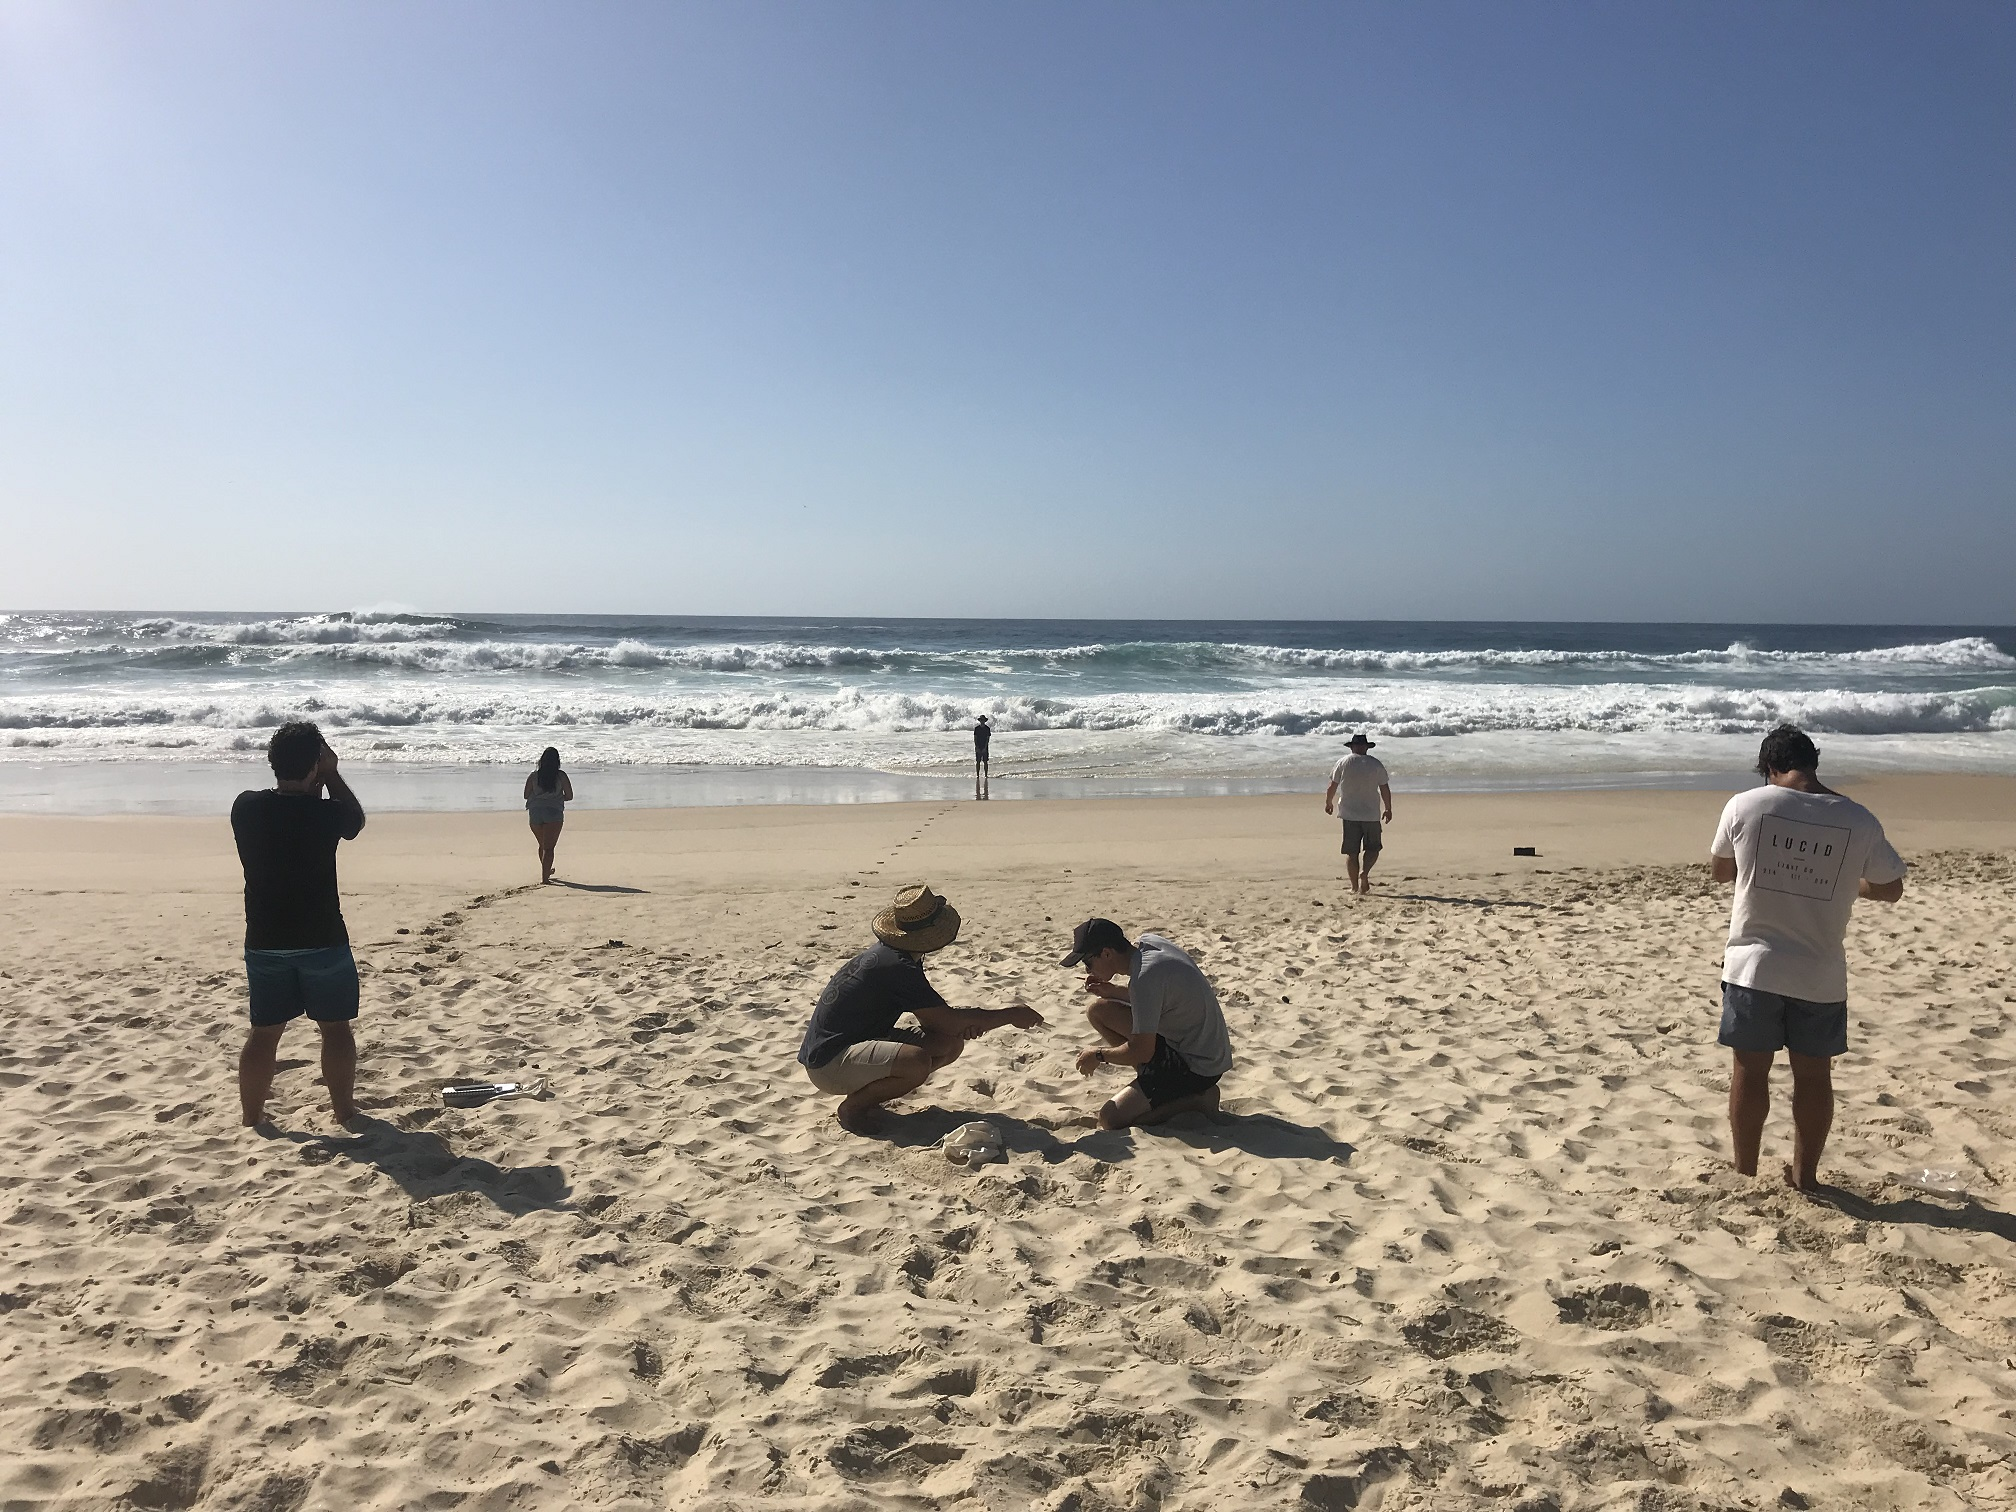 Assessing beach morphology using clinometers, sand grain size estimators and handlenses